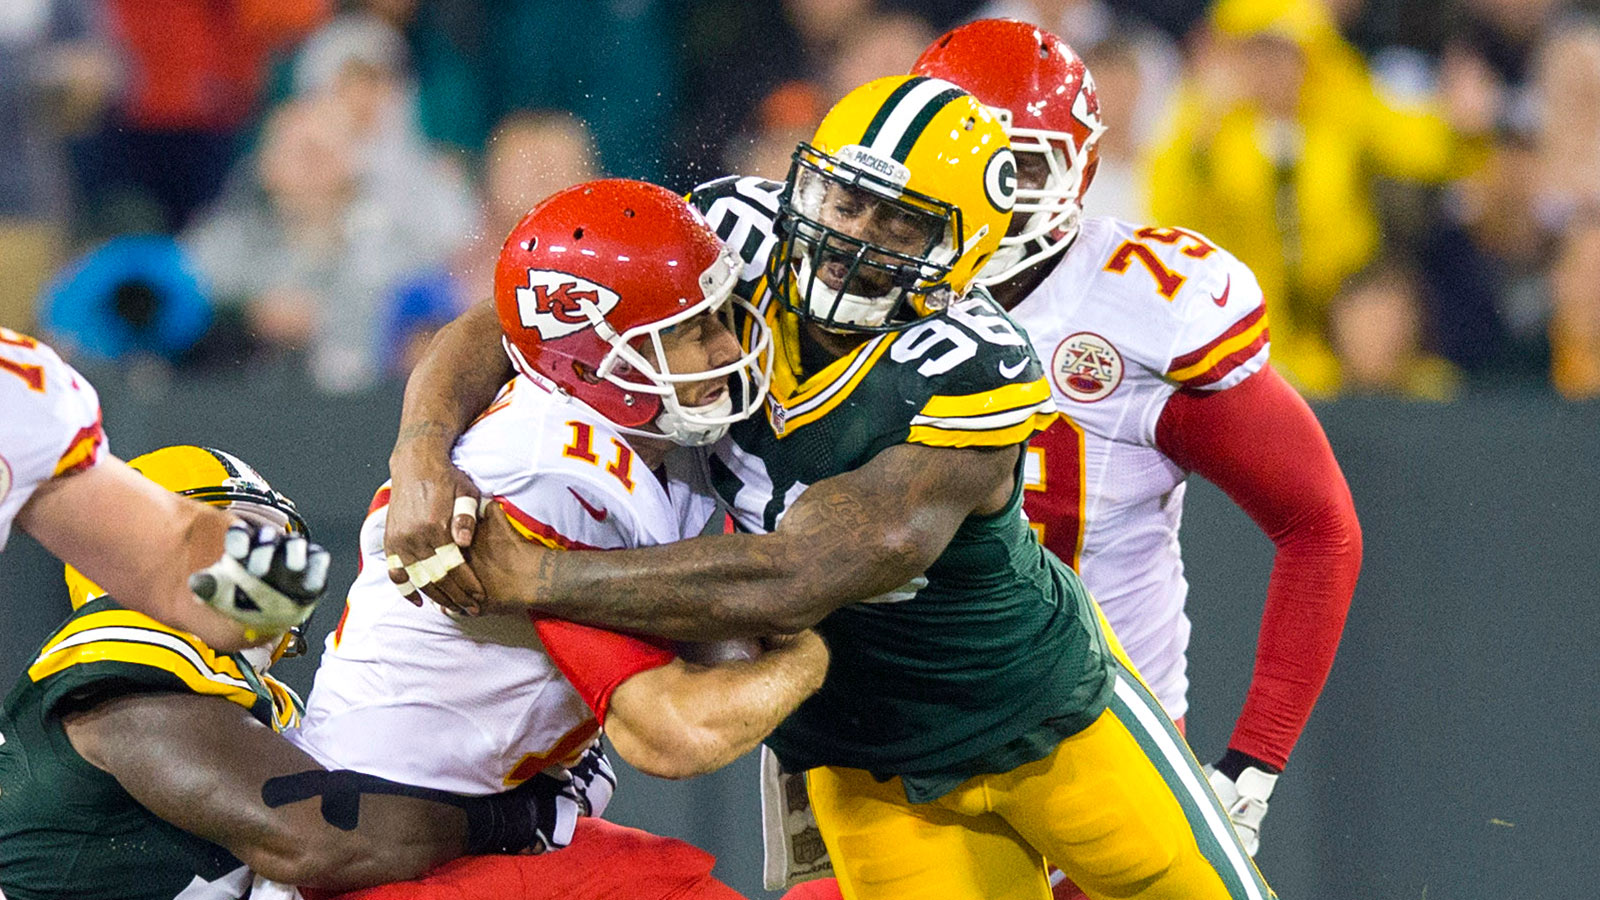 WATCH: Mike Neal recaps Packers' win over Chiefs on Monday night